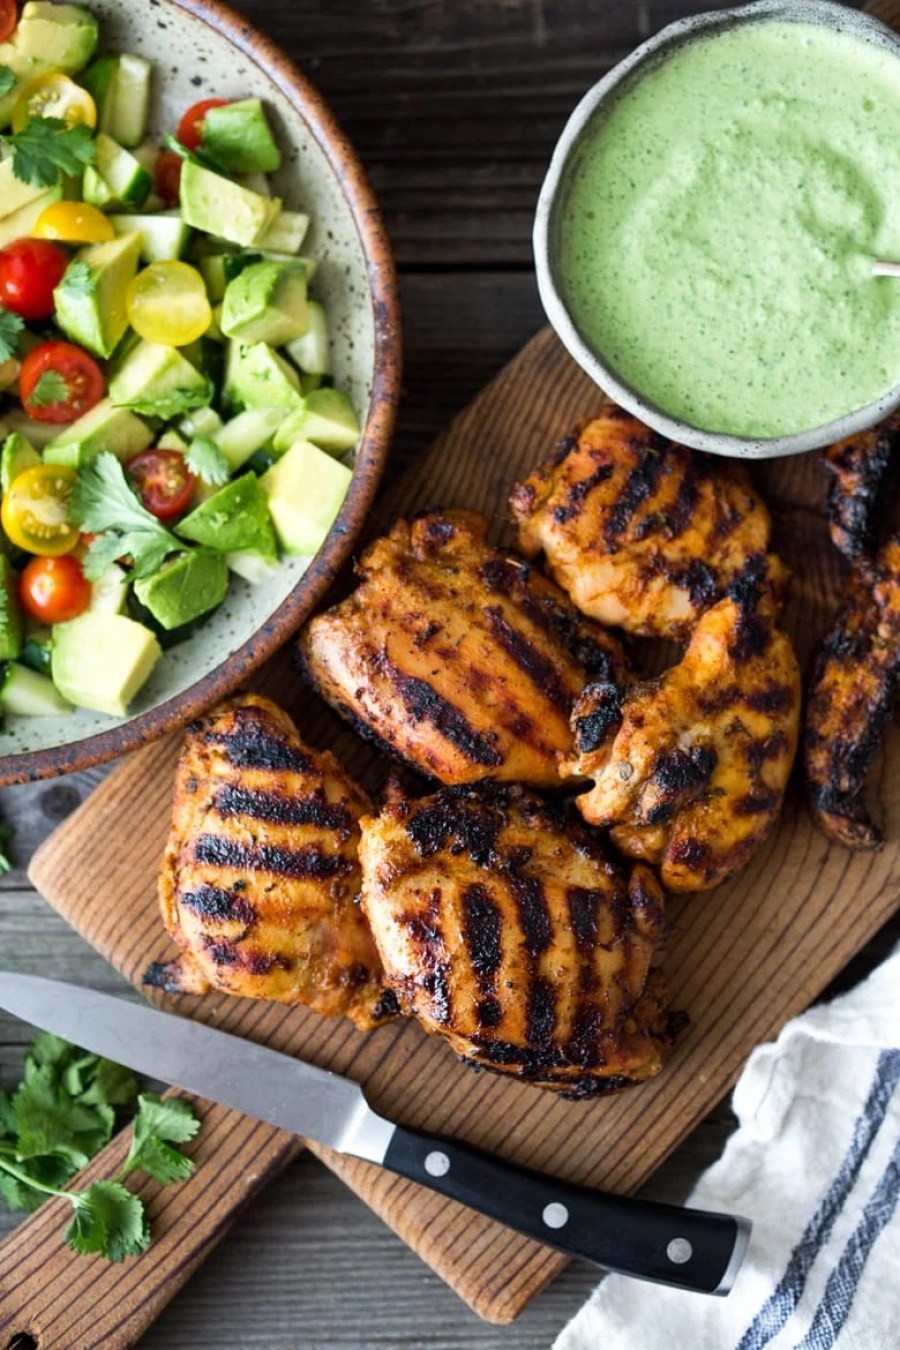 Grilled Peruvian Chicken (or Portobellos) with Green Sauce